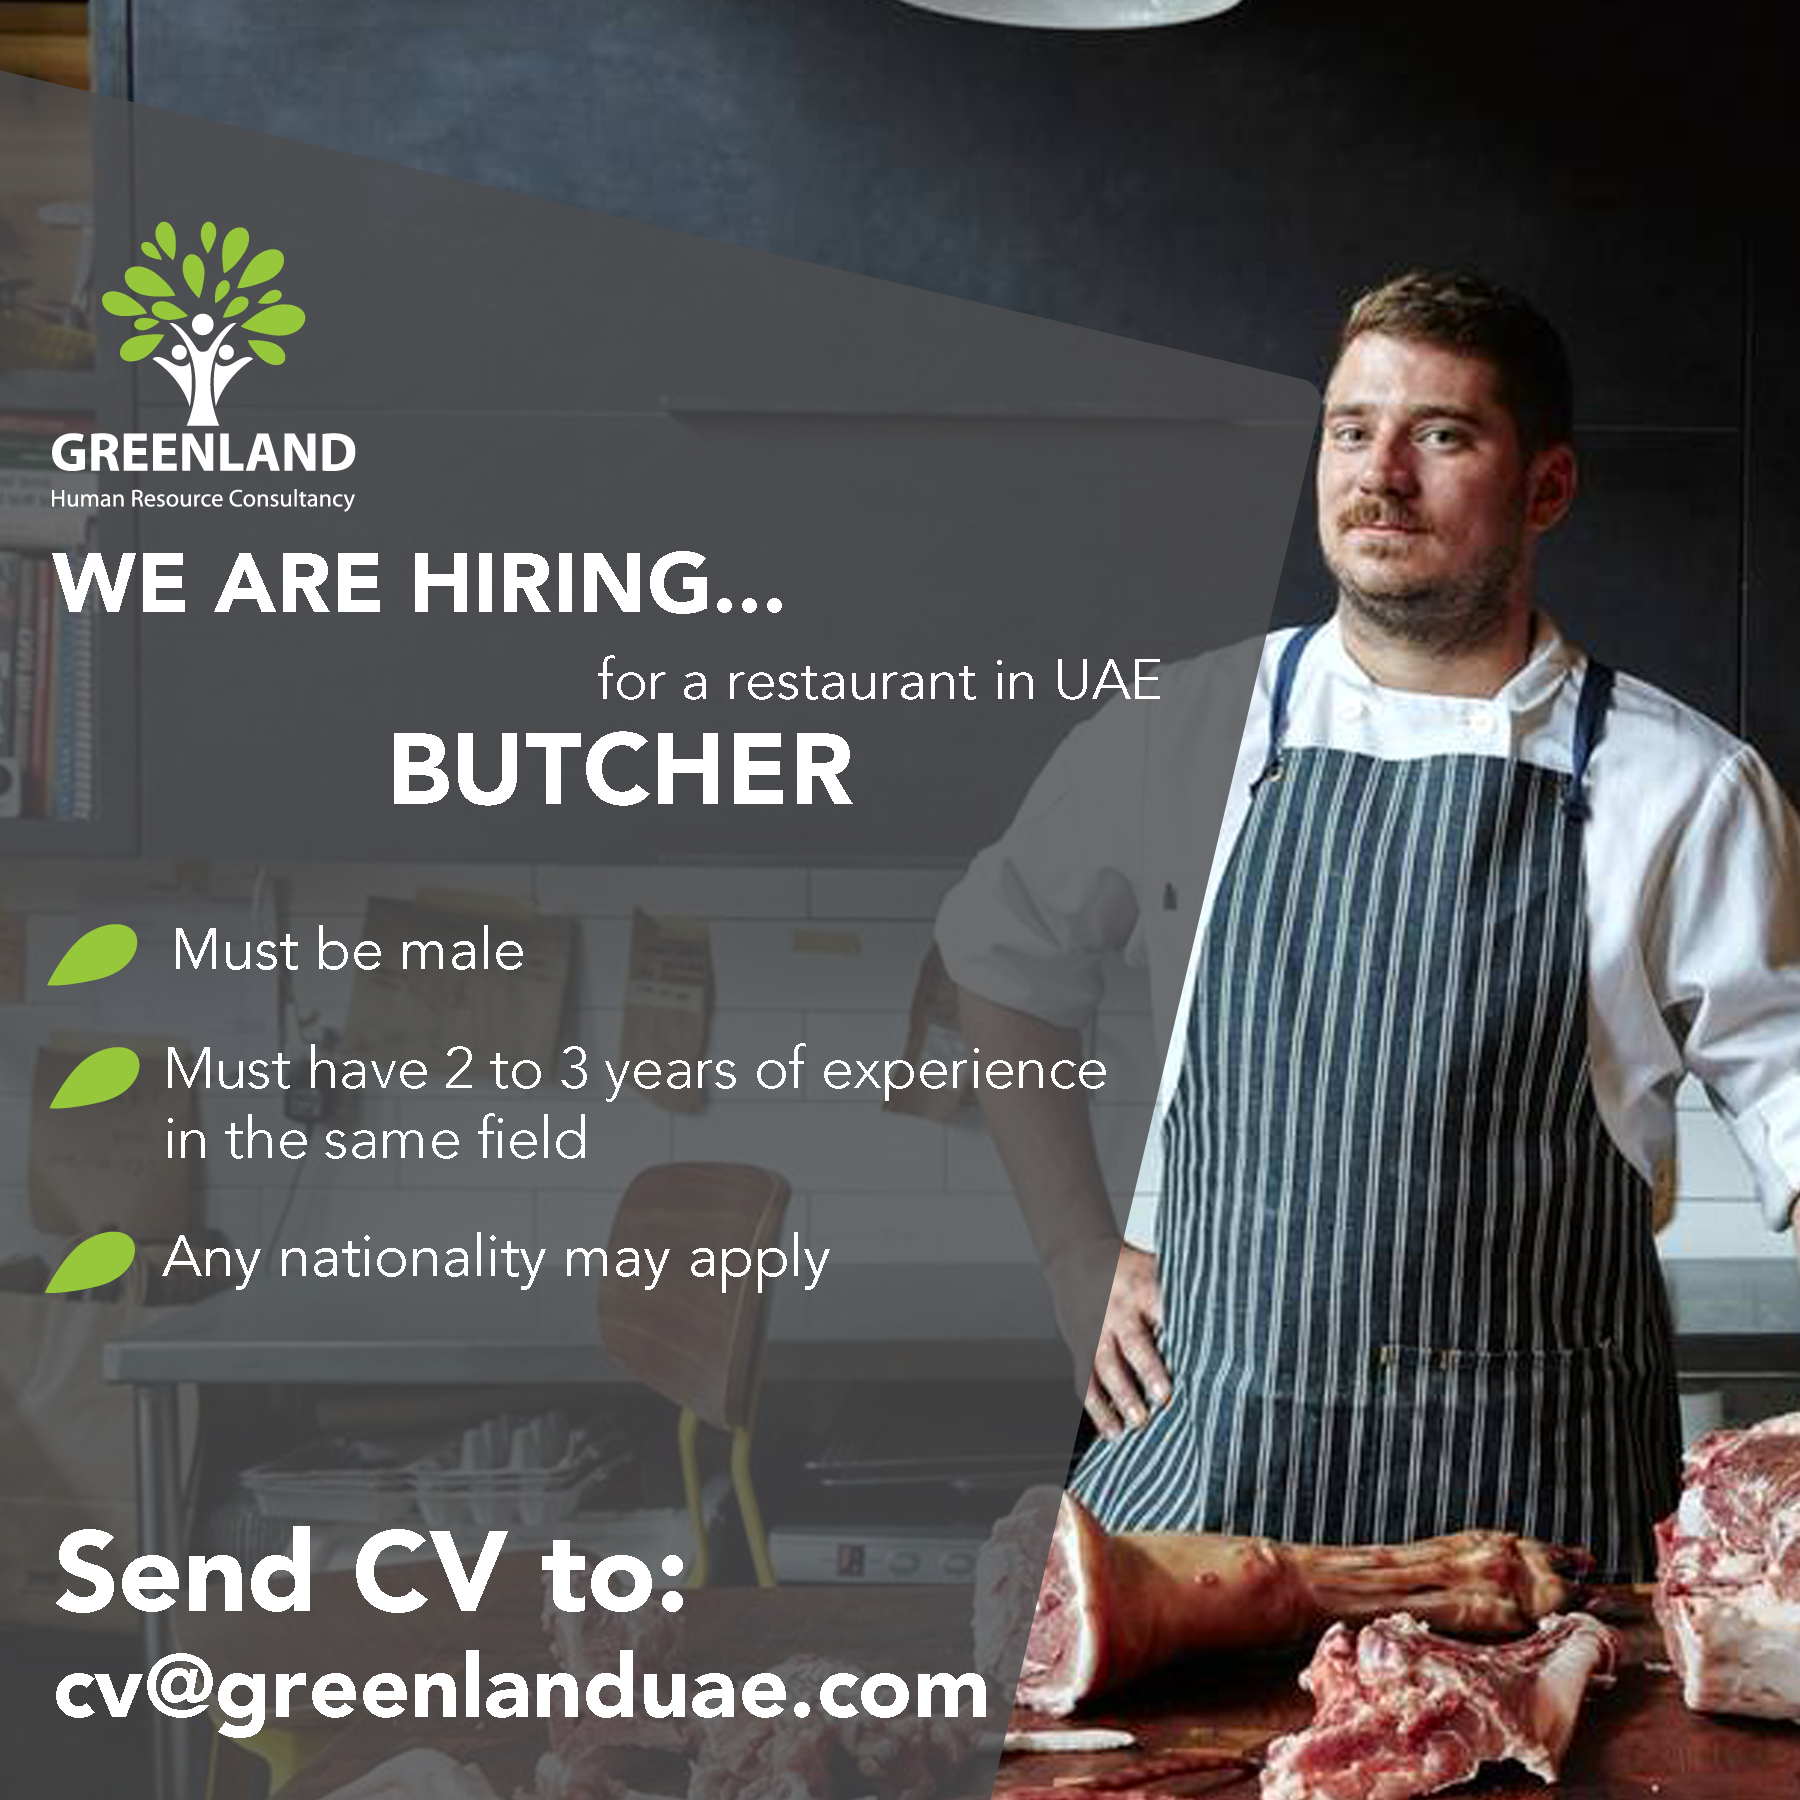 Commercial Kitchen Designer Jobs In Uae: We Are #hiring A BUTCHER For A #restaurant In Umm Al Quwain, #UAE🇦🇪 👦🏻Must Be Male 🍖Must Have 2